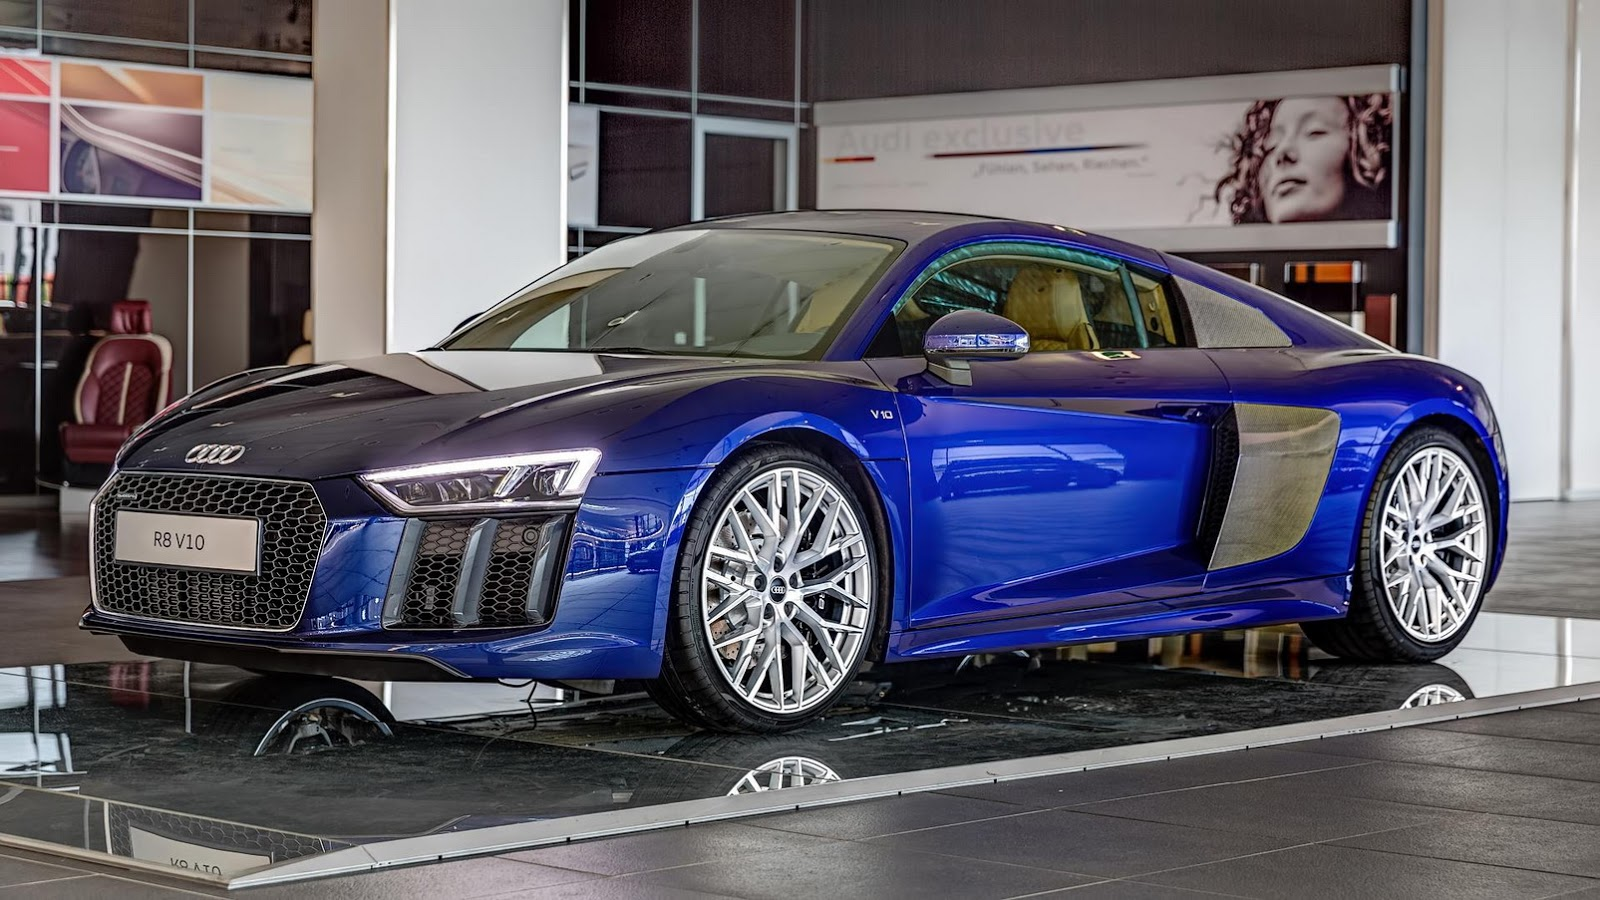 beautiful blue 2016 audi r8 v10 in germany gtspirit. Black Bedroom Furniture Sets. Home Design Ideas